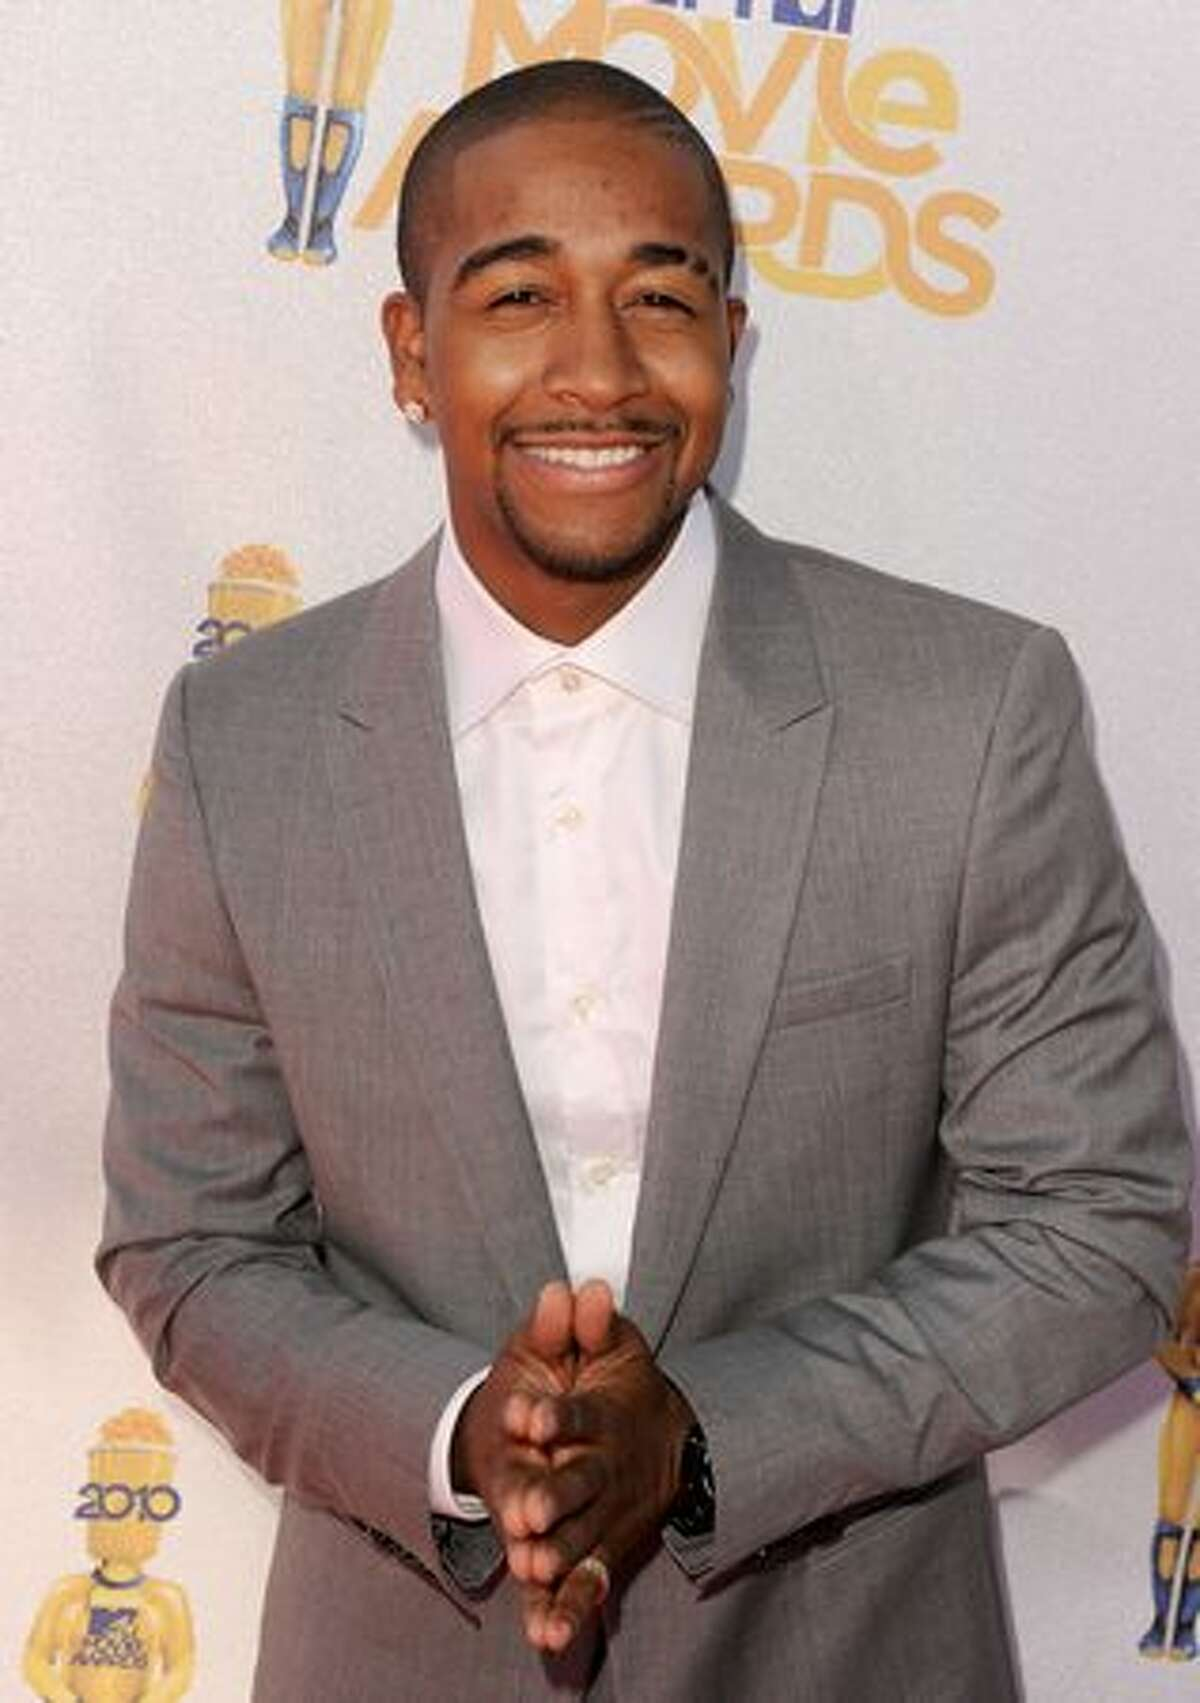 Omarion and Apryl Jones Kid's name: Megaa Omari Grandberry, which sounds like a trendy probiotic beverage.